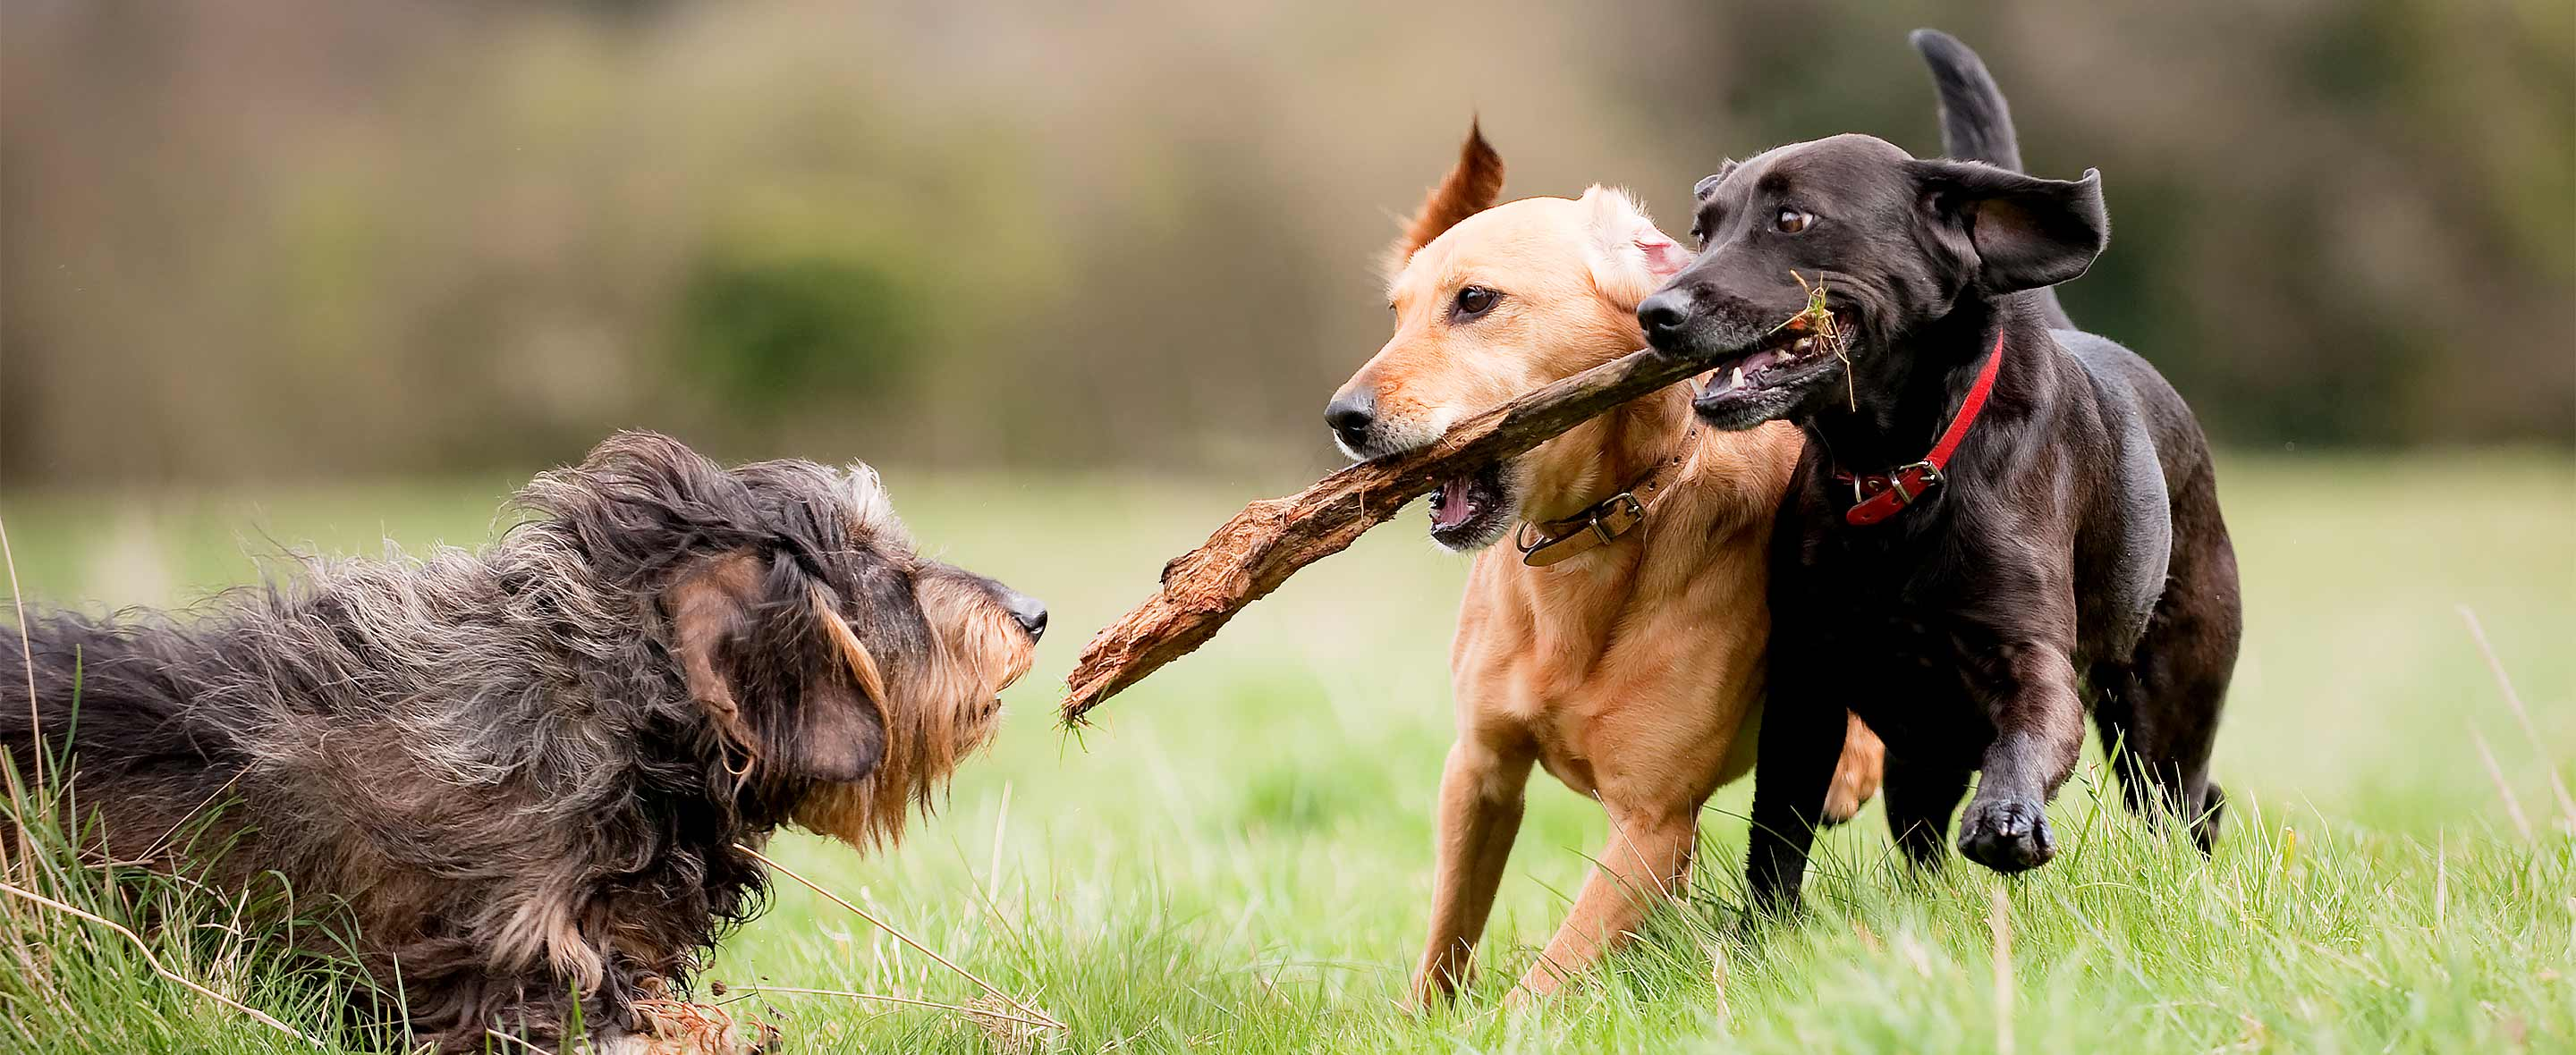 Dogs running with a stick outdoors